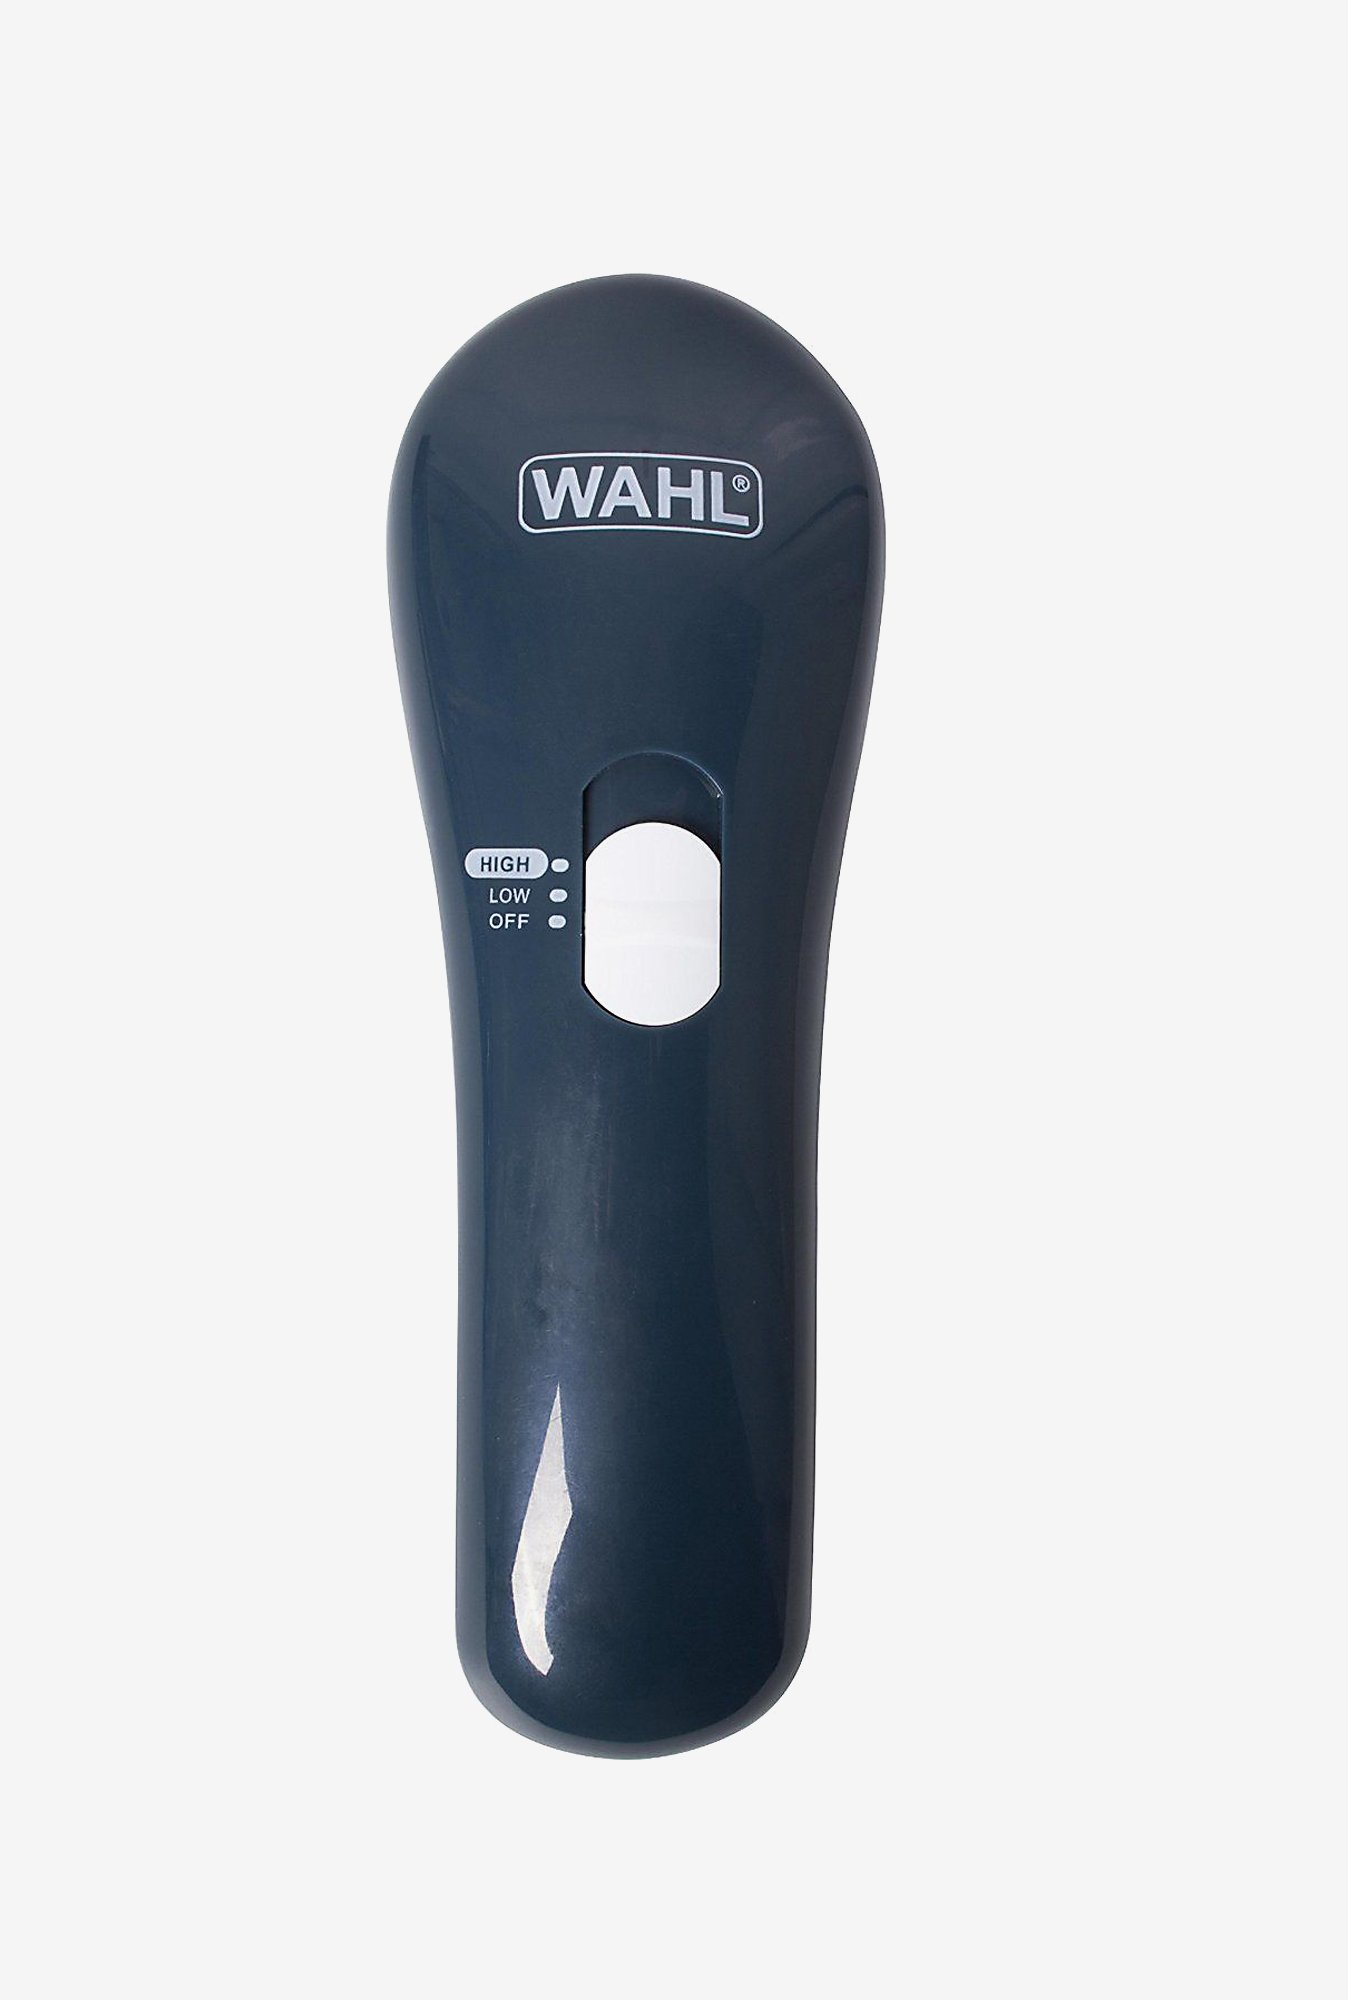 Wahl 04297-024 Spot Therapy Massager Blue